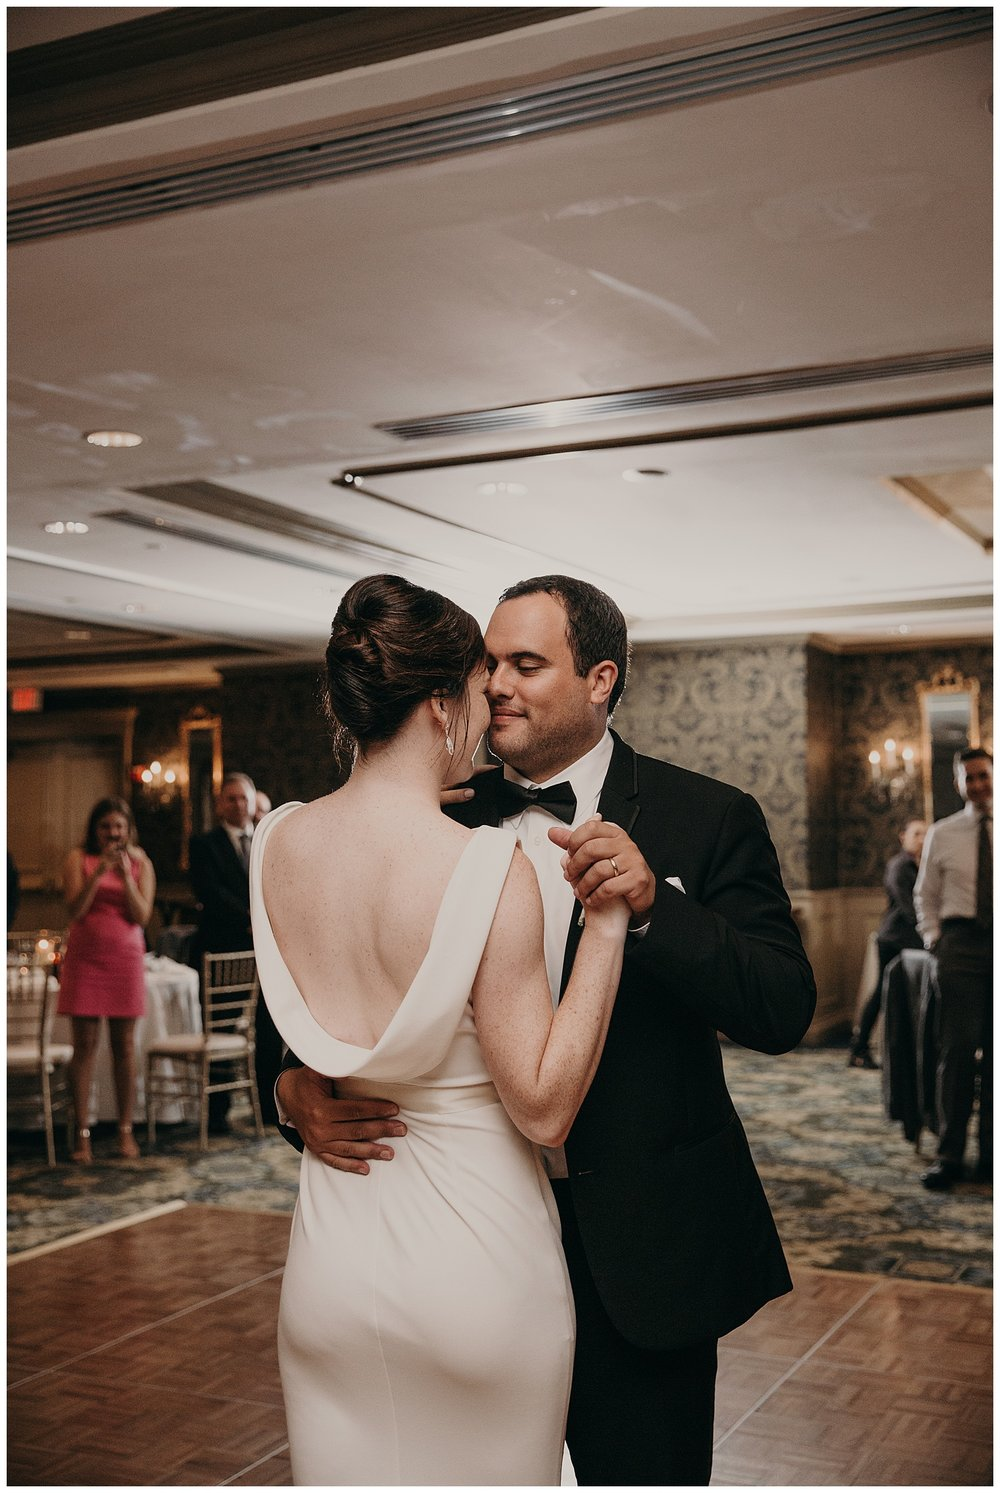 Mike_Kelly_Hotel_Viking_Newport_Rhode_Island_Wedding_028.jpeg